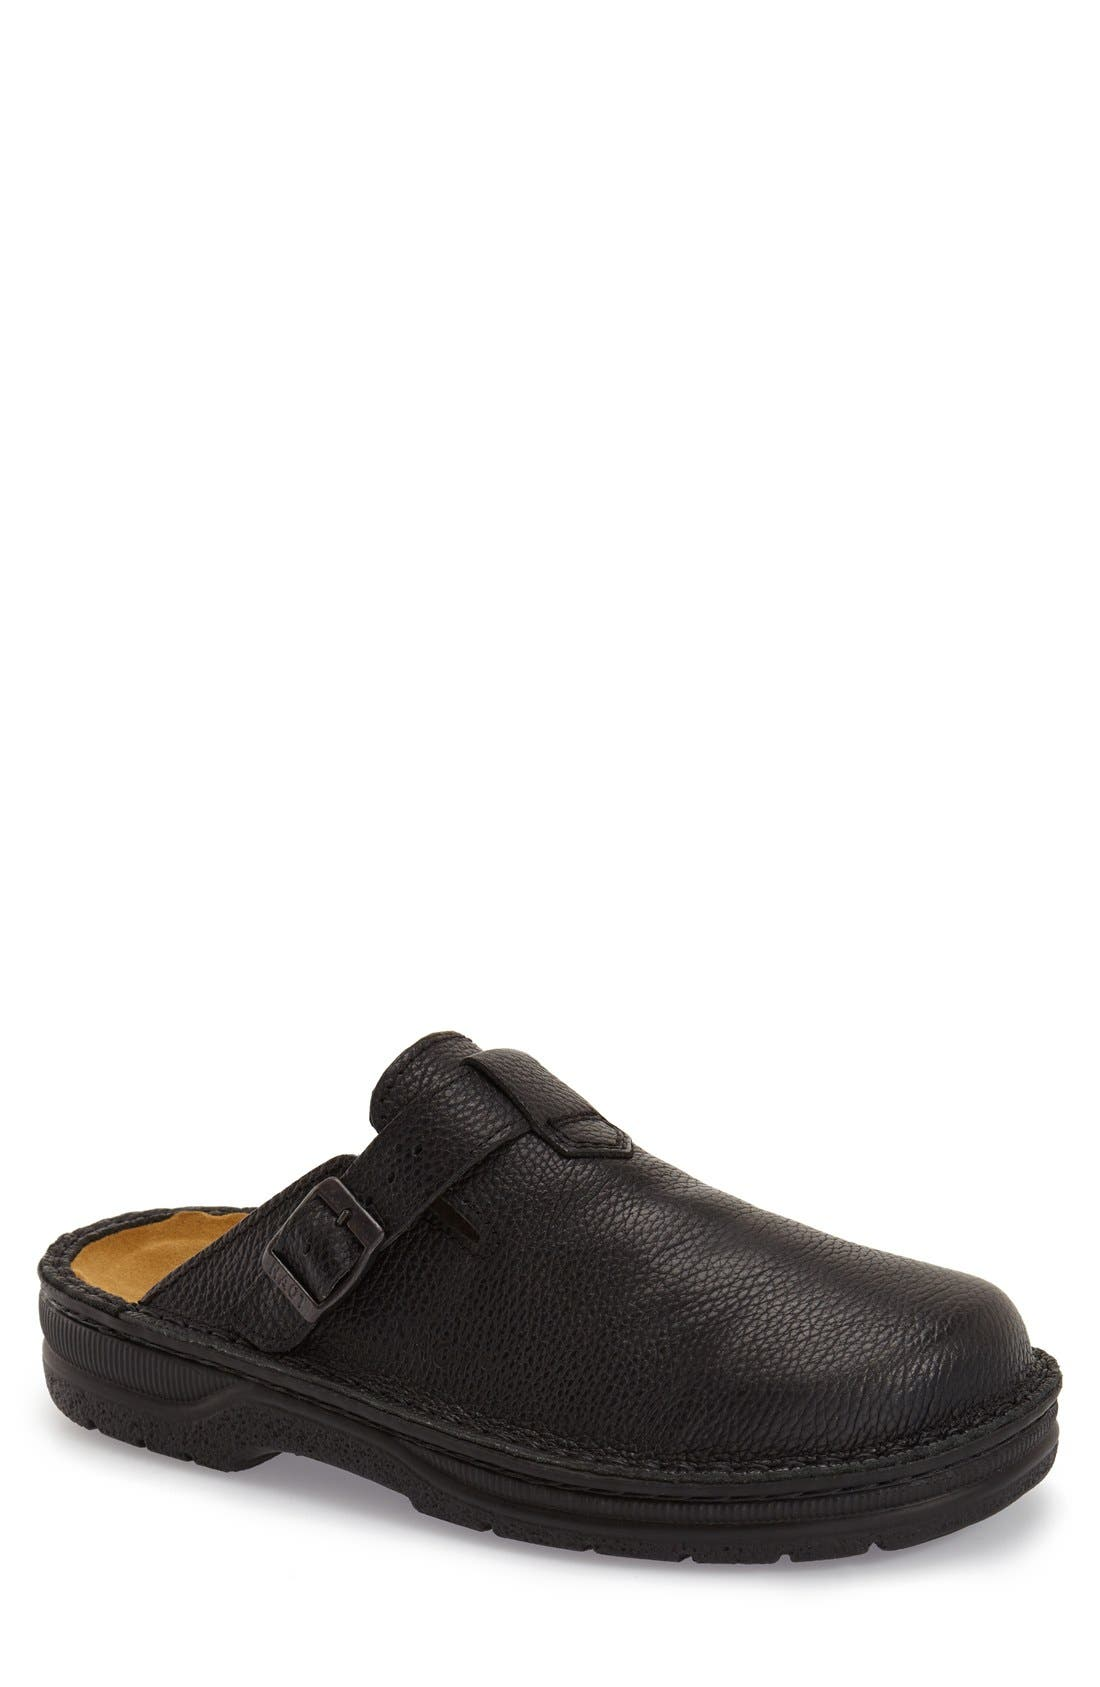 Discount Best Prices Naot Manyara Slip-On(Men's) -Oily Coal Nubuck/Black Velvet Nubuck Cheap Sale Official Site New Sale Online zY11O